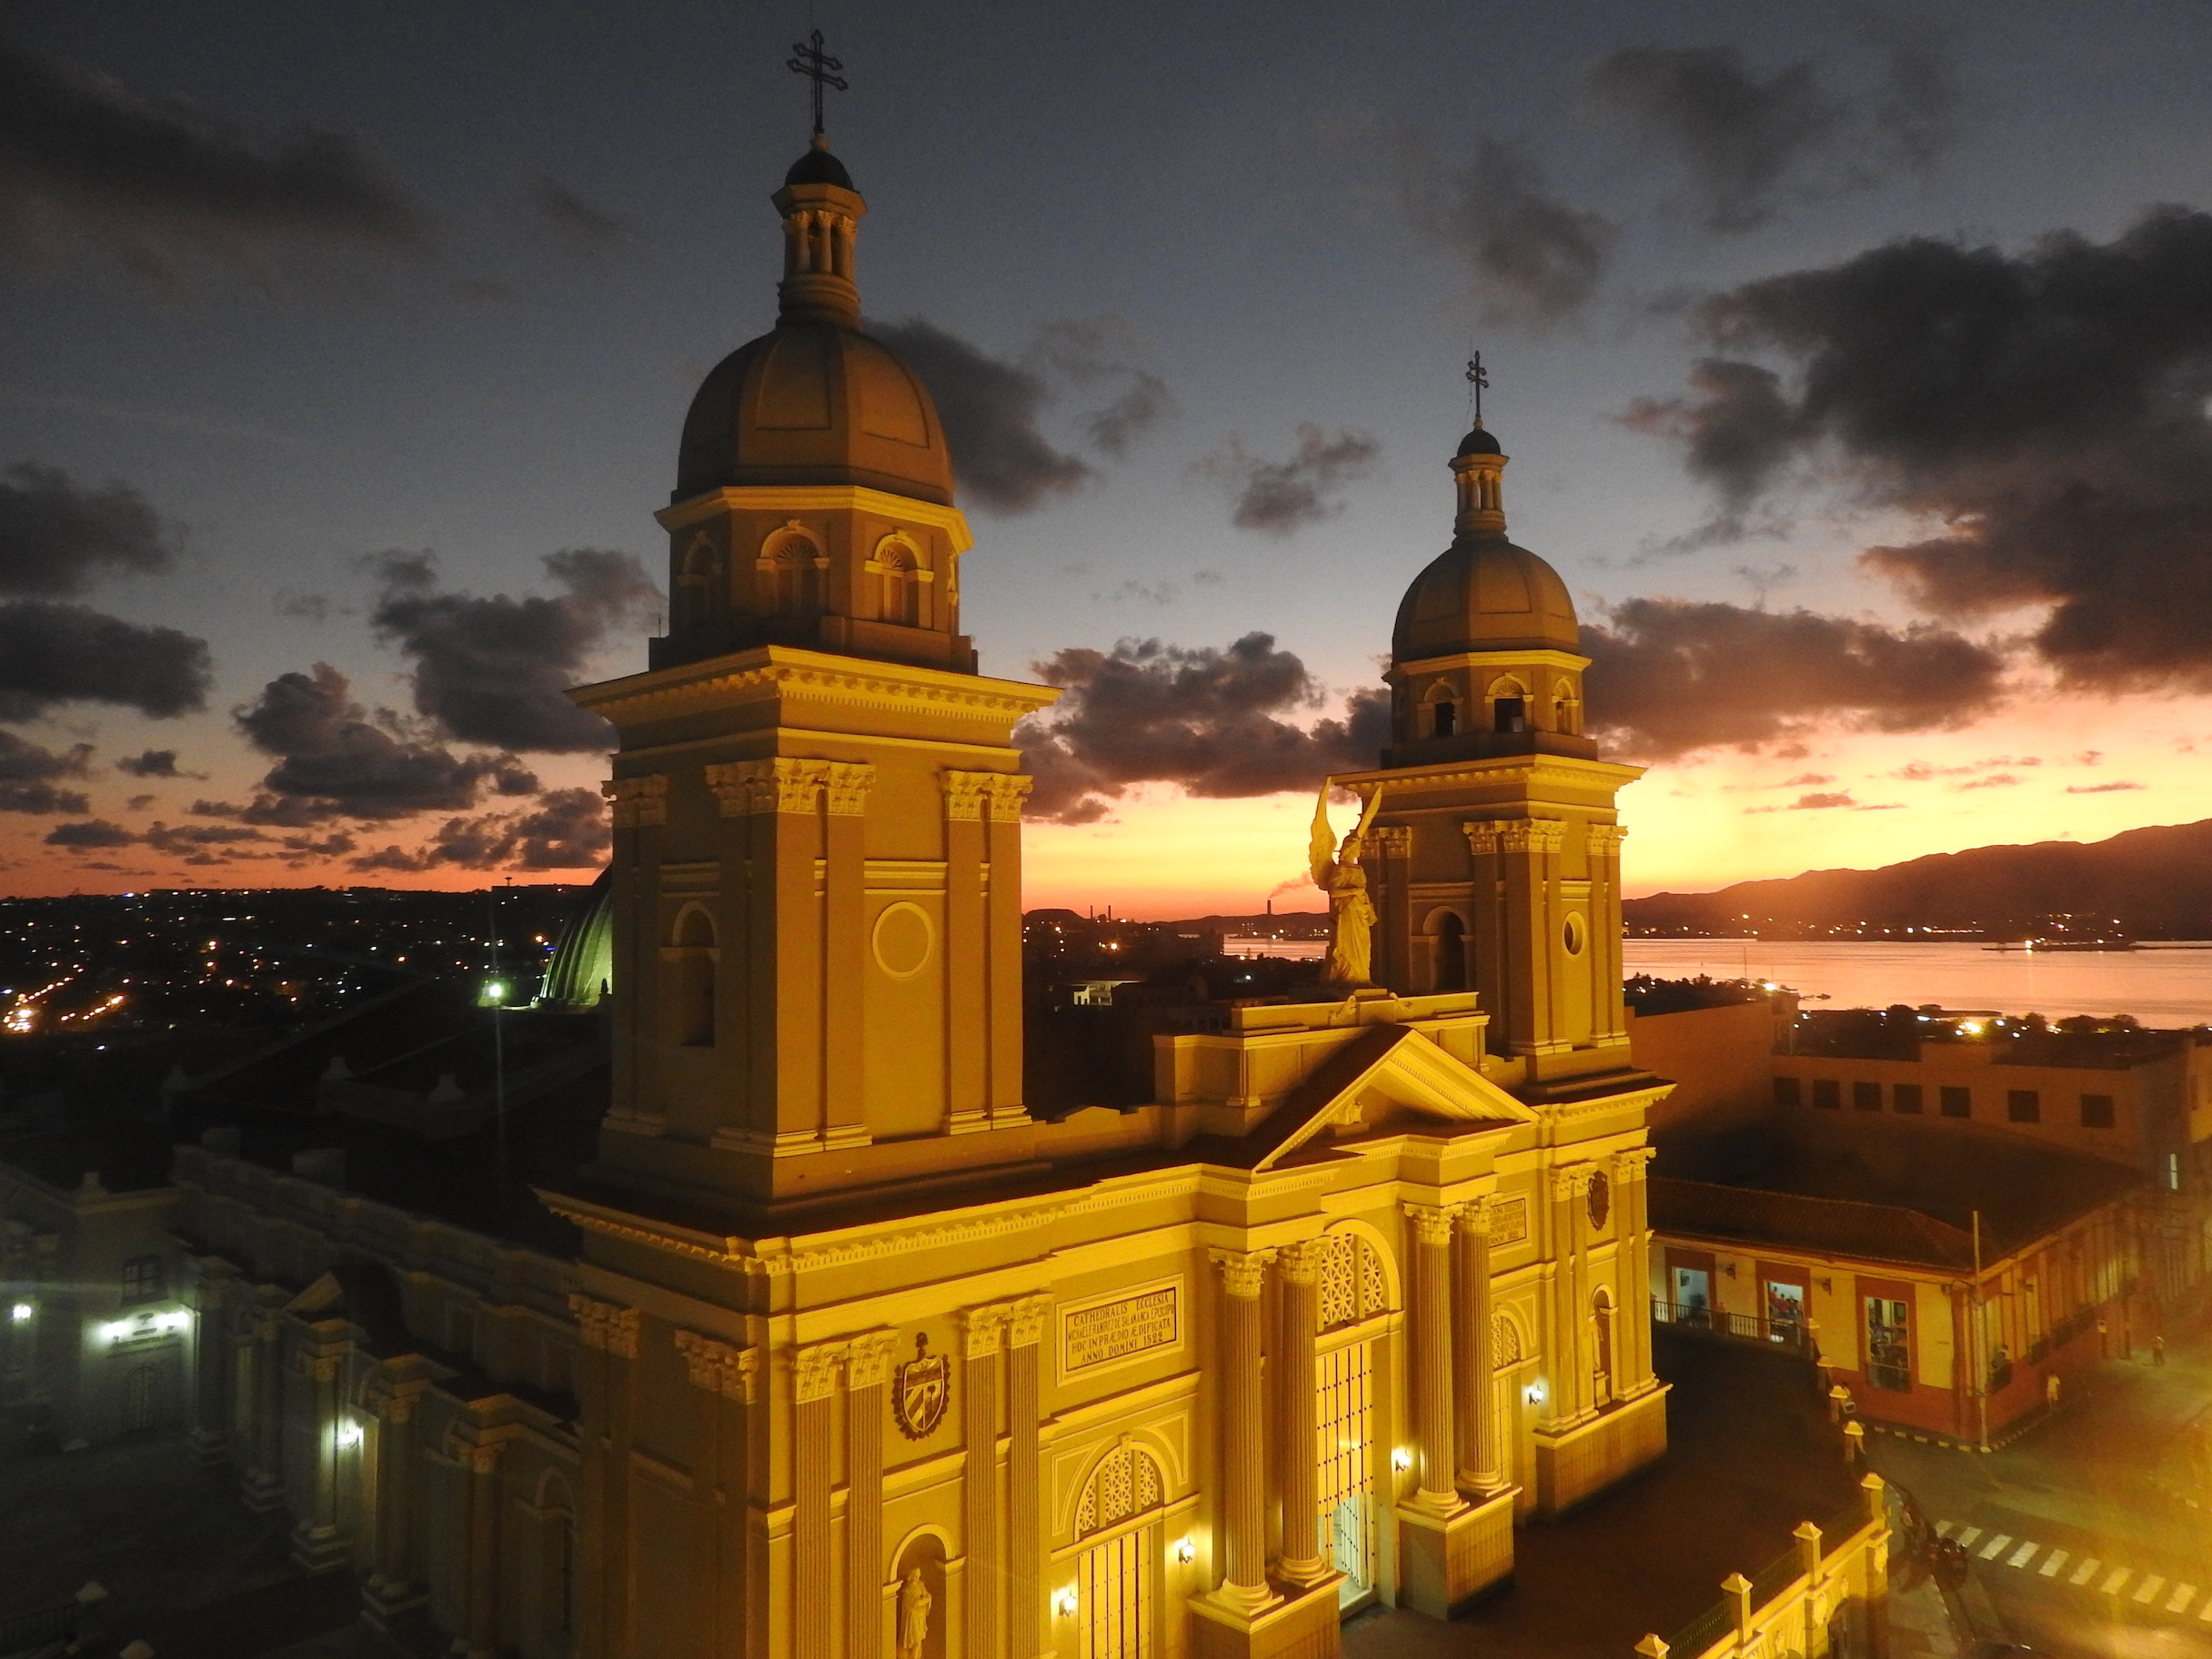 Santiago de Cuba Cathedral at night